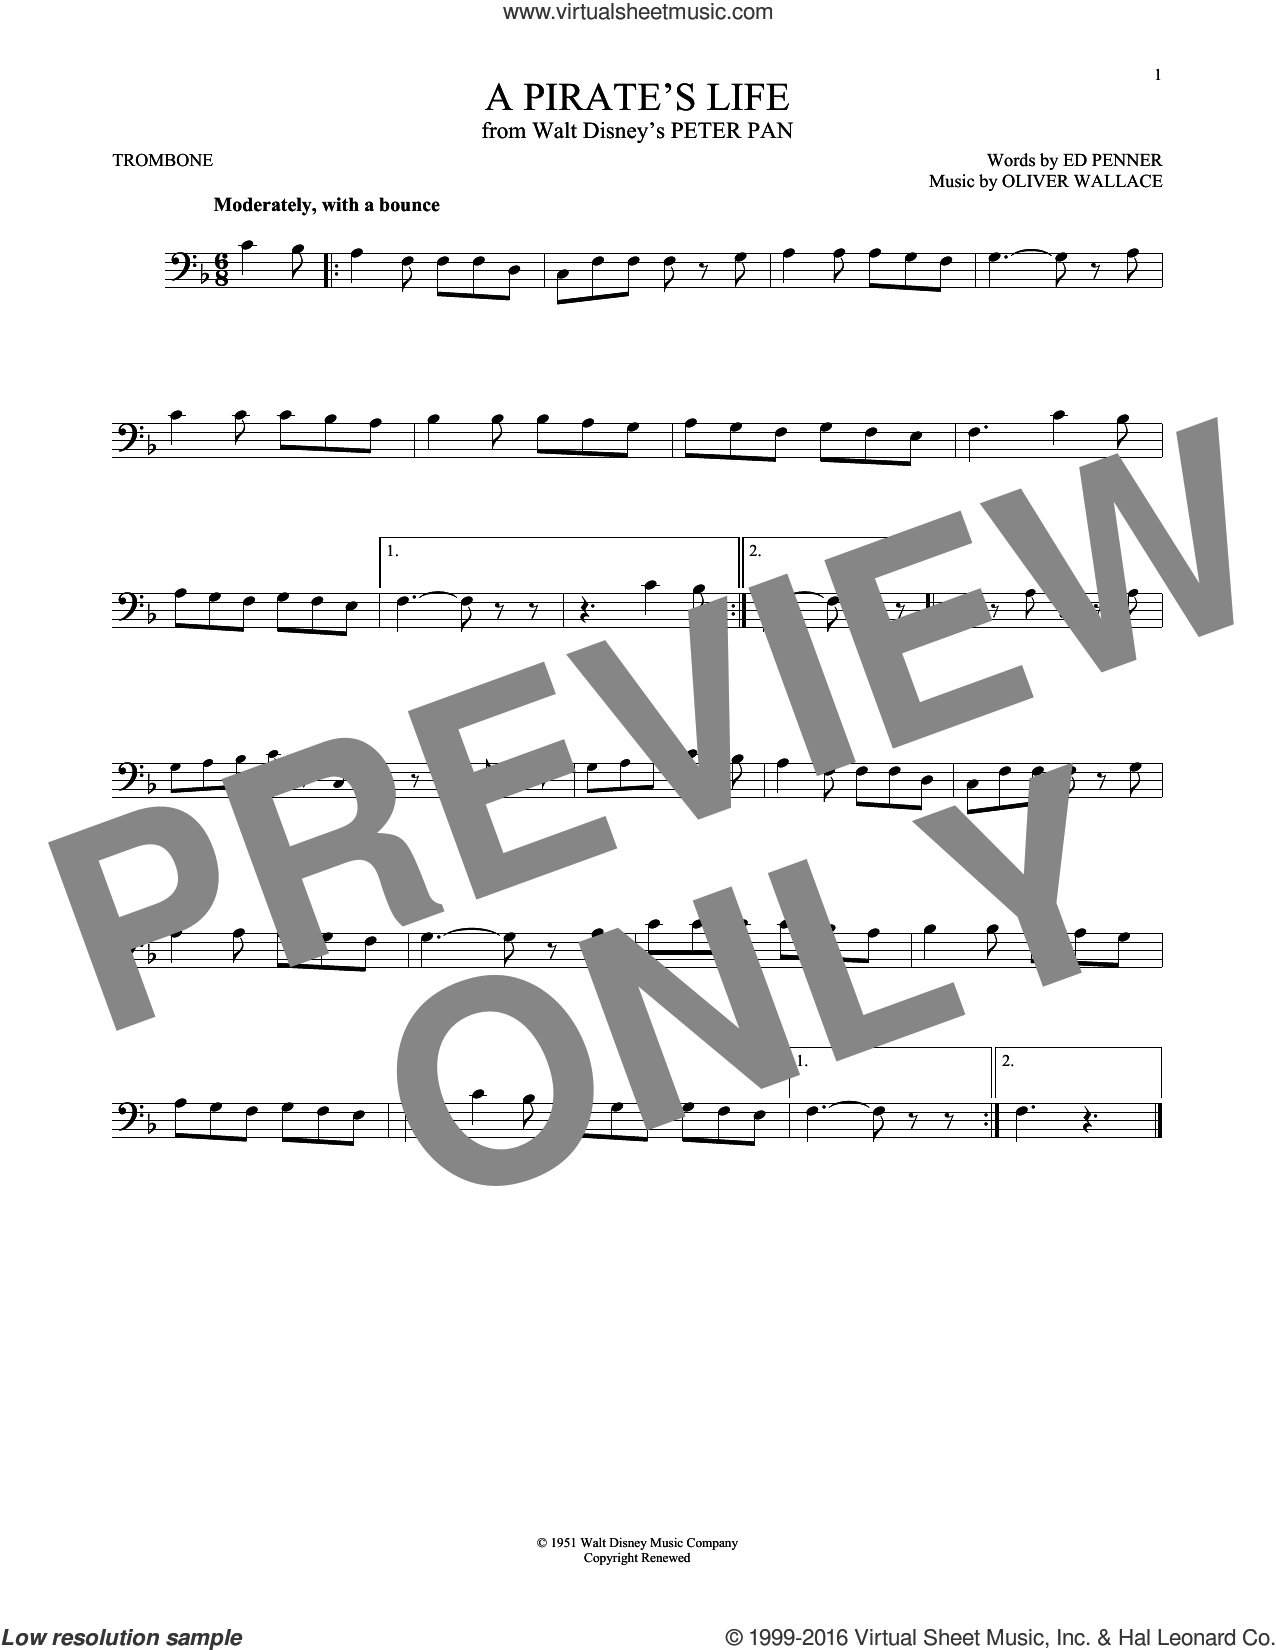 A Pirate's Life sheet music for trombone solo by Oliver Wallace and Ed Penner, intermediate